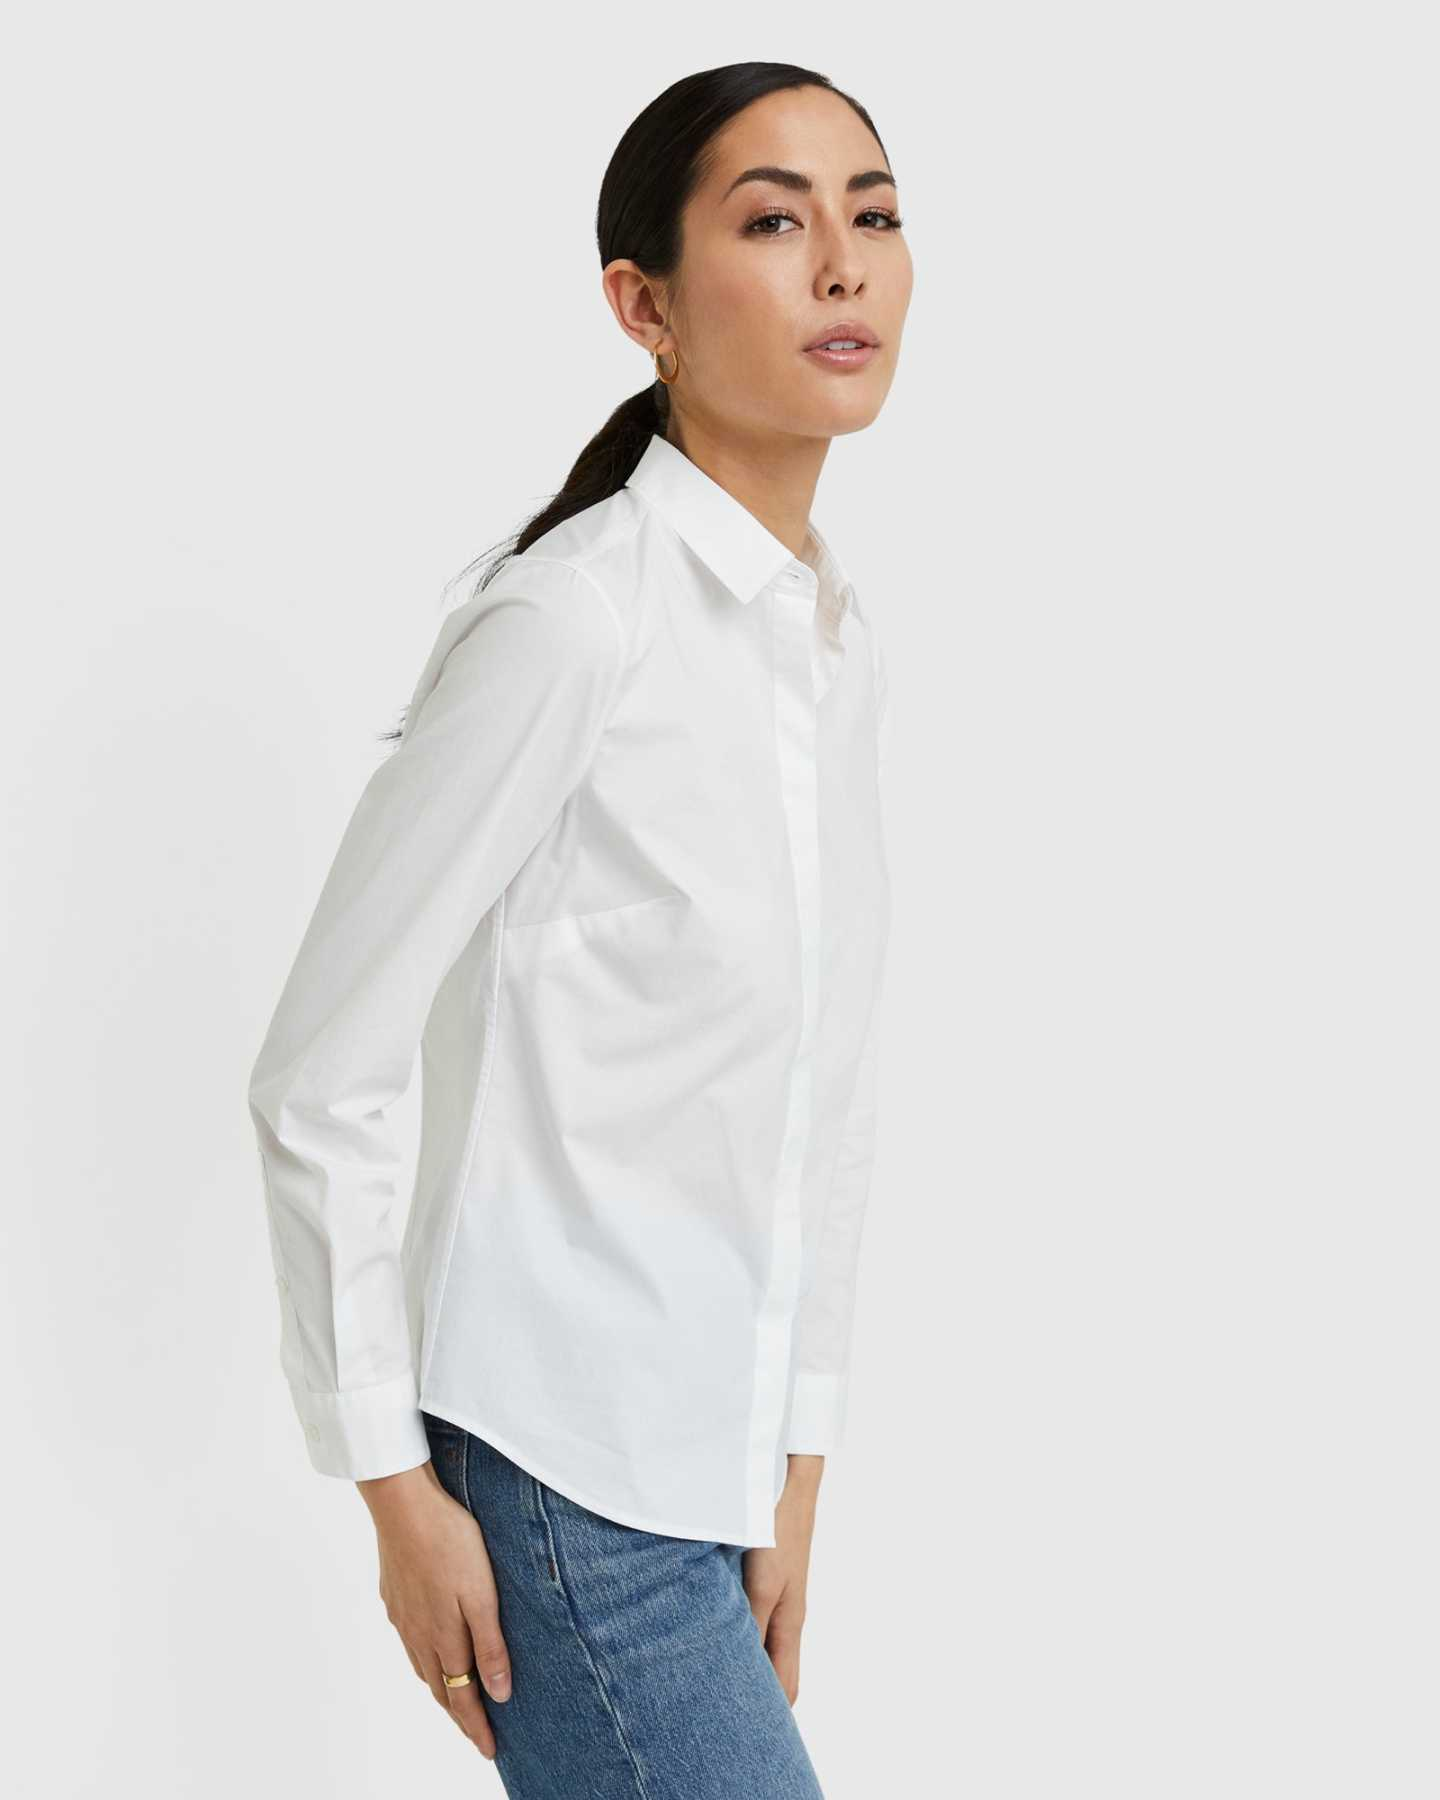 Organic Cotton Stretch Poplin Shirt - 13587171836015